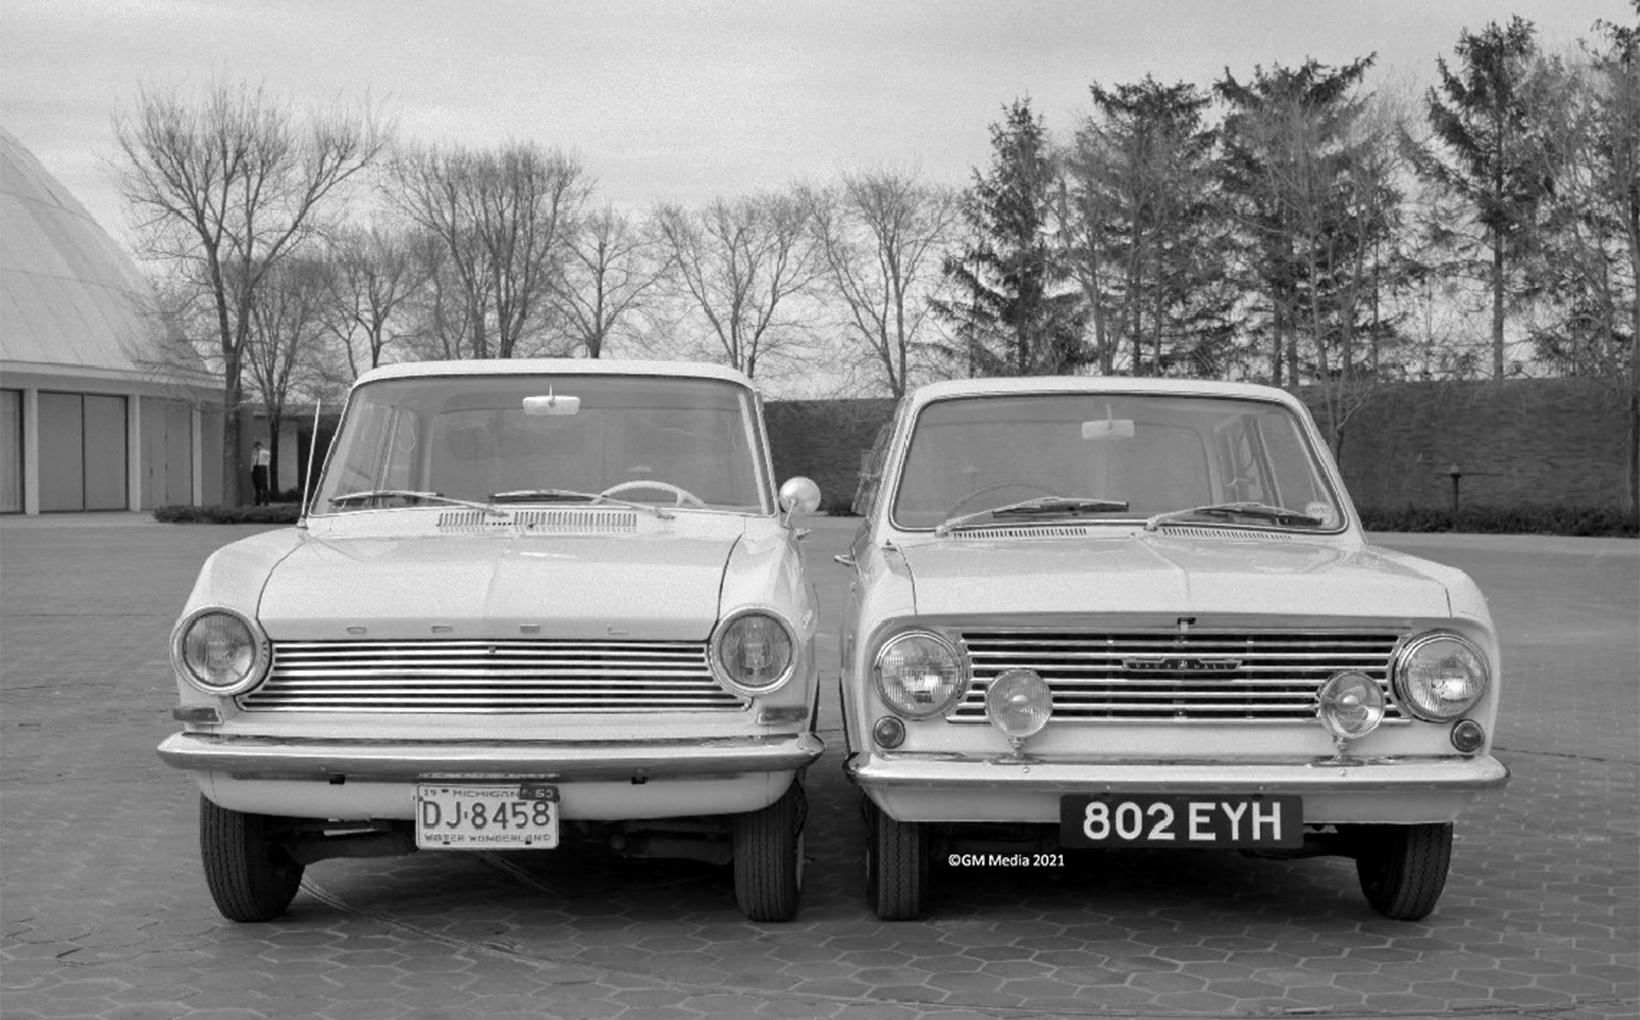 1963 Opel Kadett and 1964 Vauxhall Viva